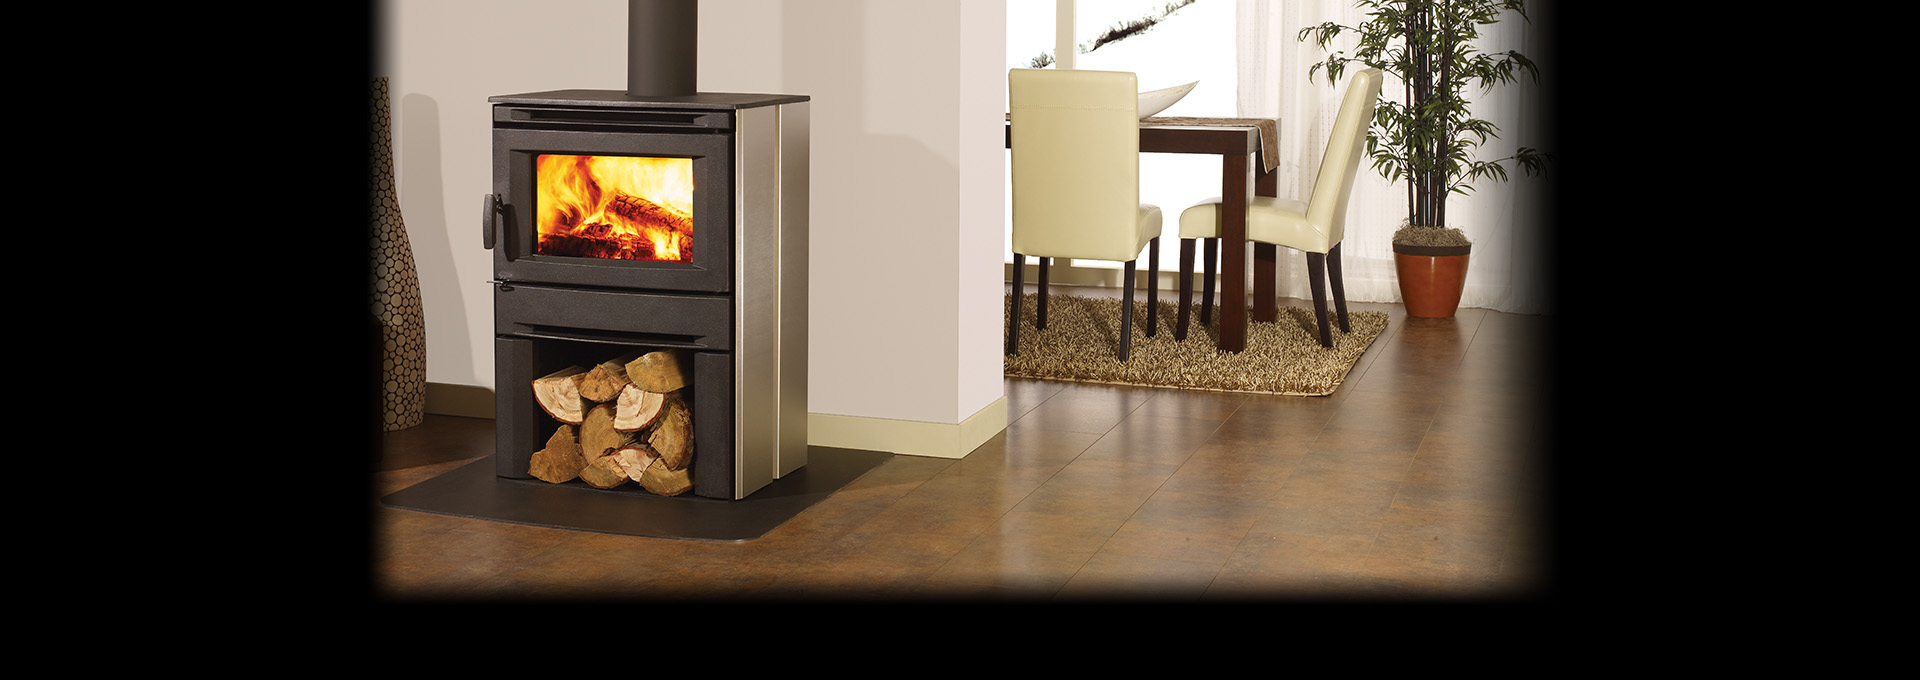 cs1200 modern wood stove wood stoves regency fireplace products